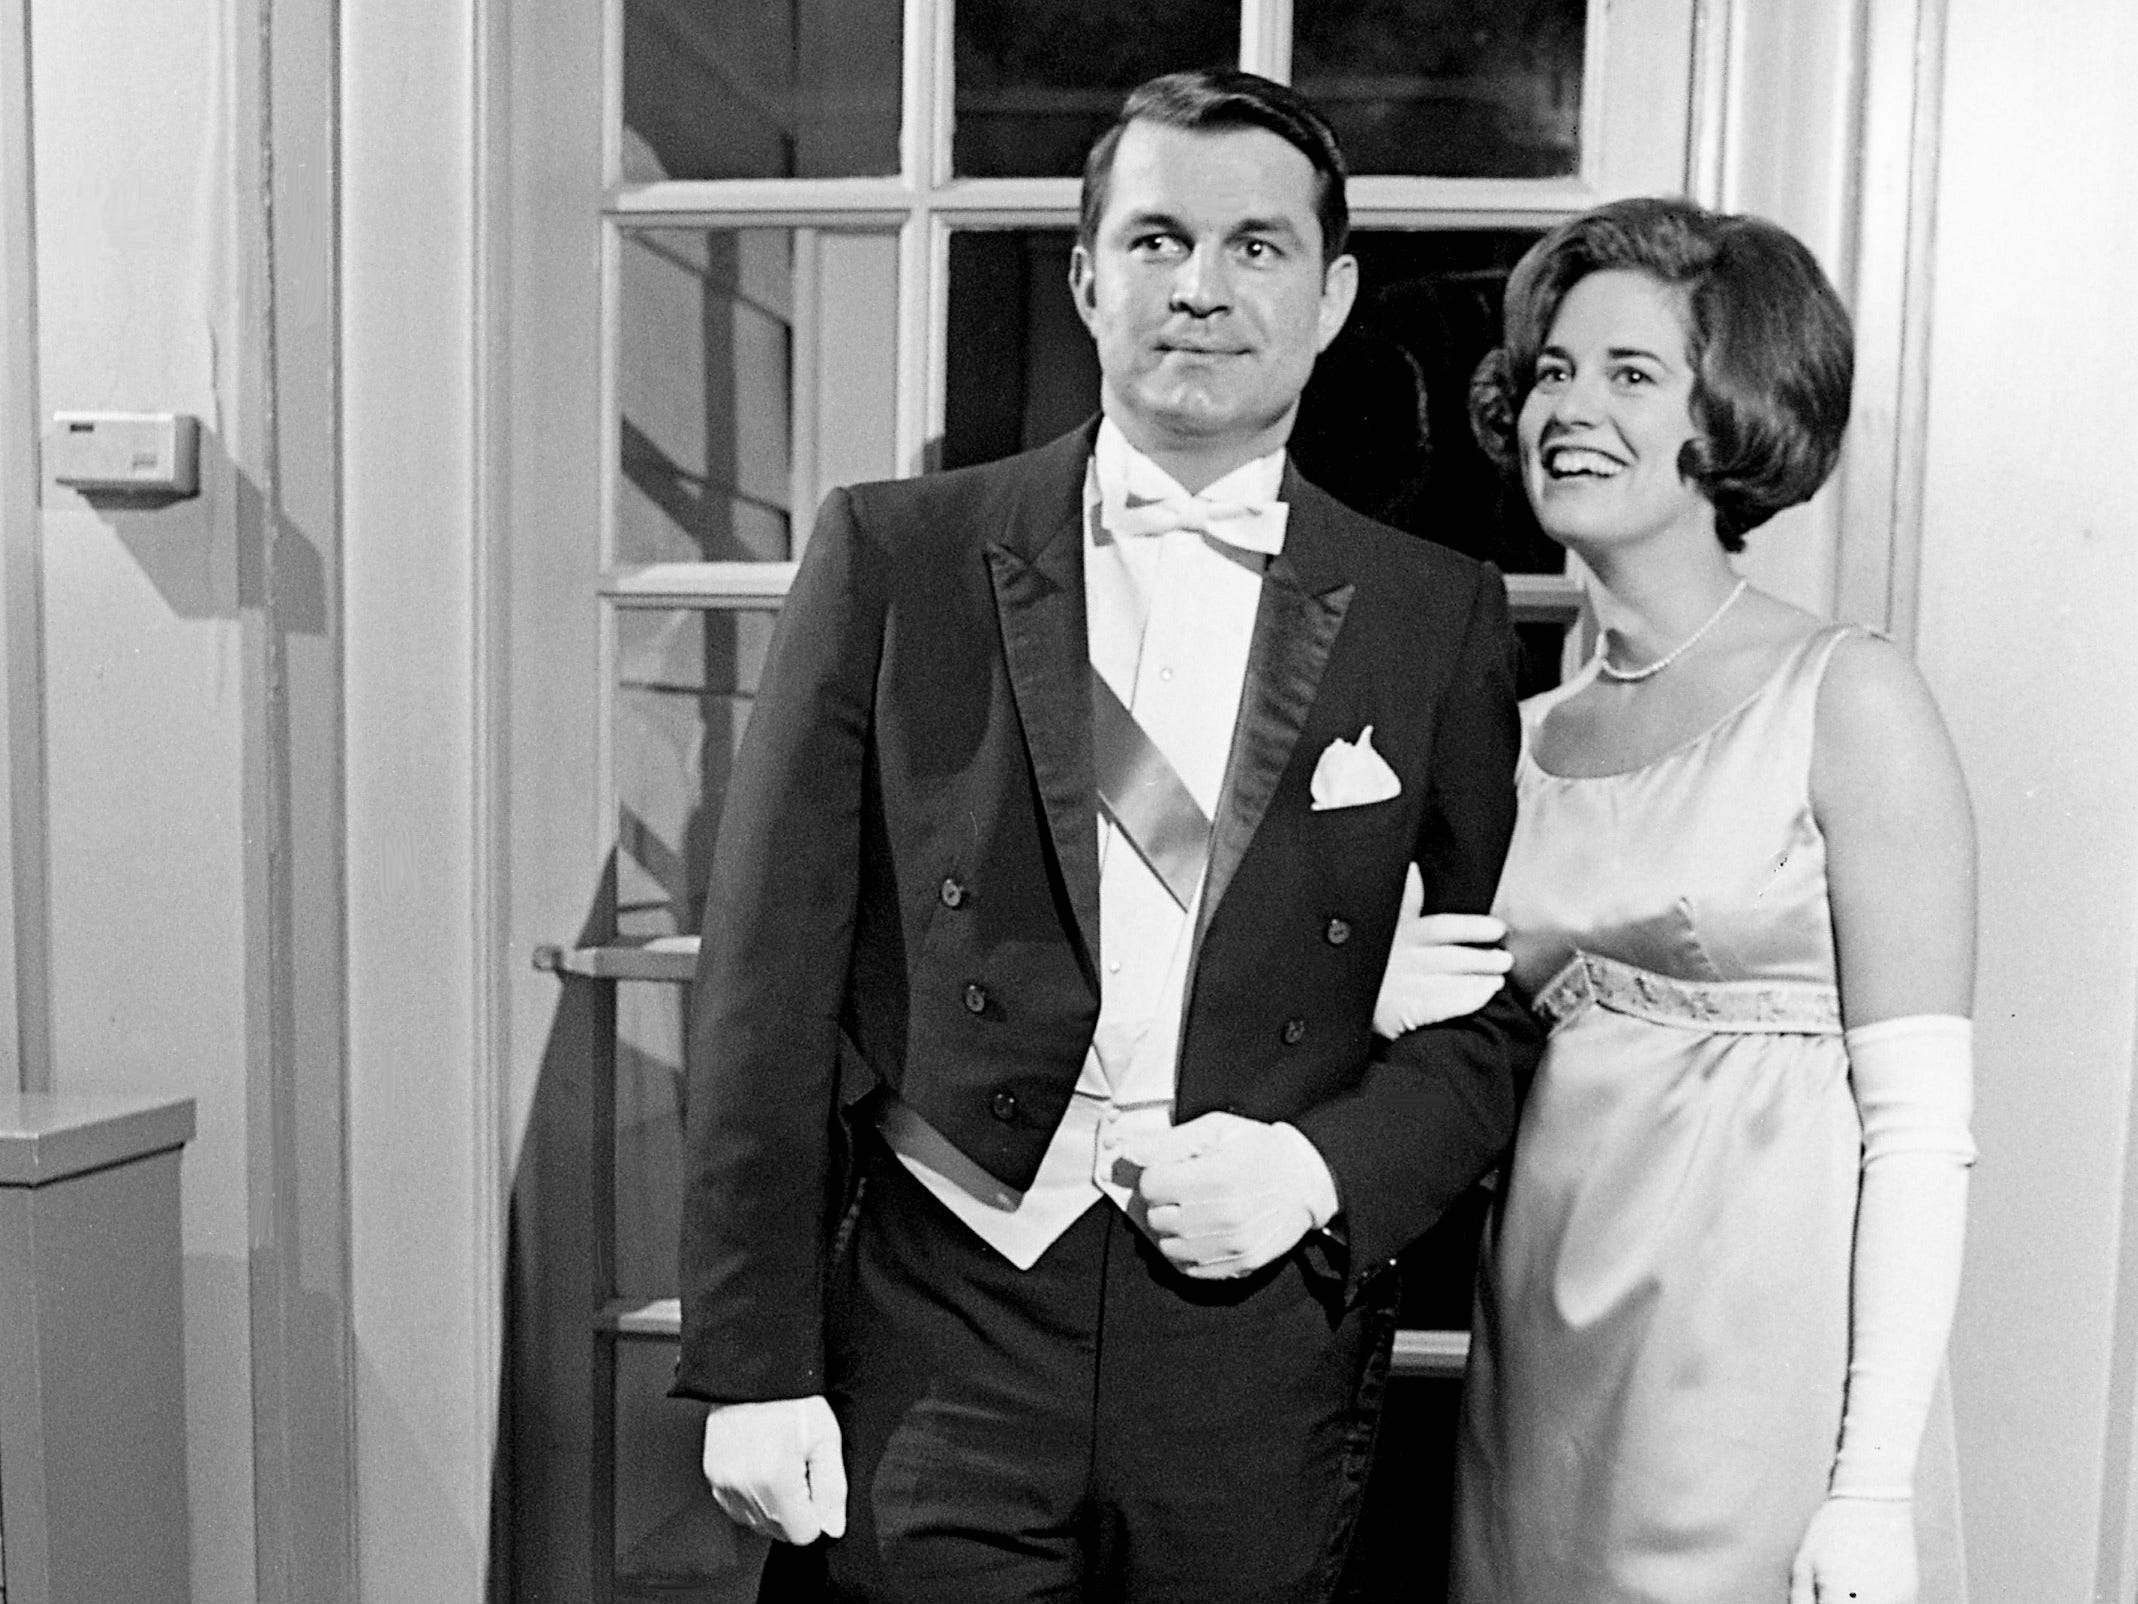 The Bachelor Club of Nashville President Alan Goar, left, and Julie Palmer of Boston arrive for the club's winter formal dinner and dance at the Belle Meade Country Club on Jan. 18, 1969.